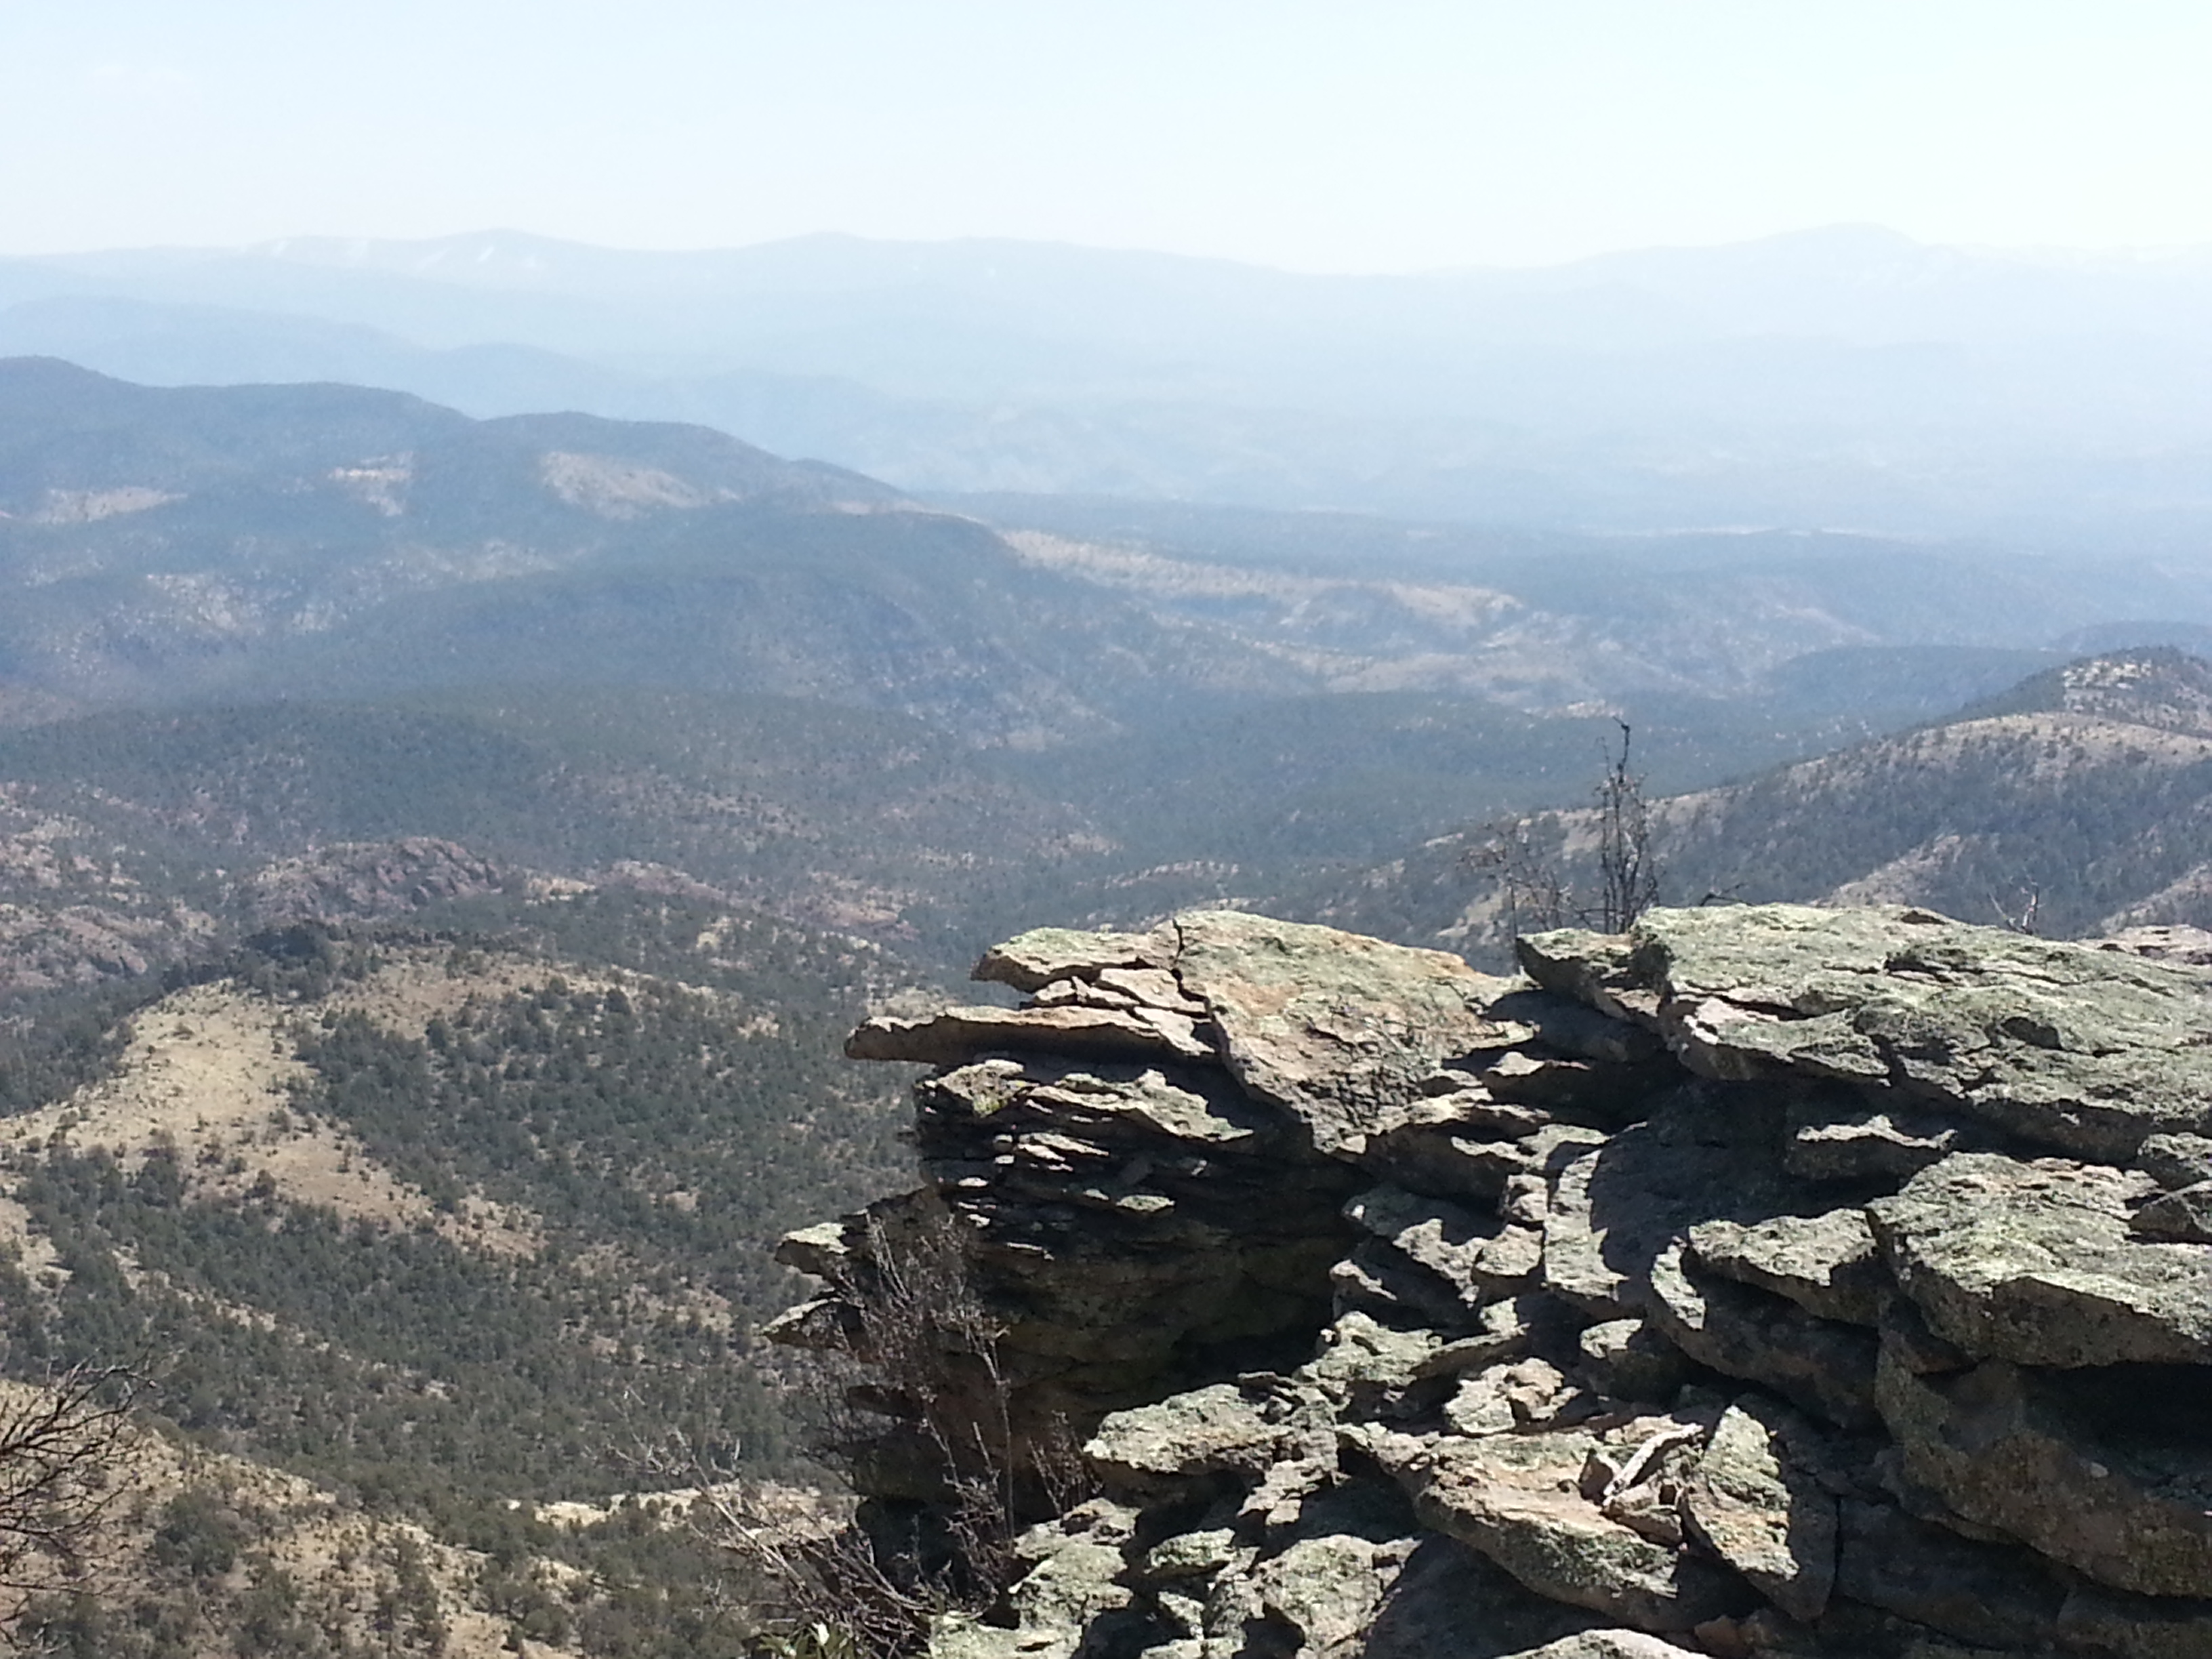 View From Tige Rim Trail into Blue Range Wilderness and Mogollon Mountains of the Gila Wilderness